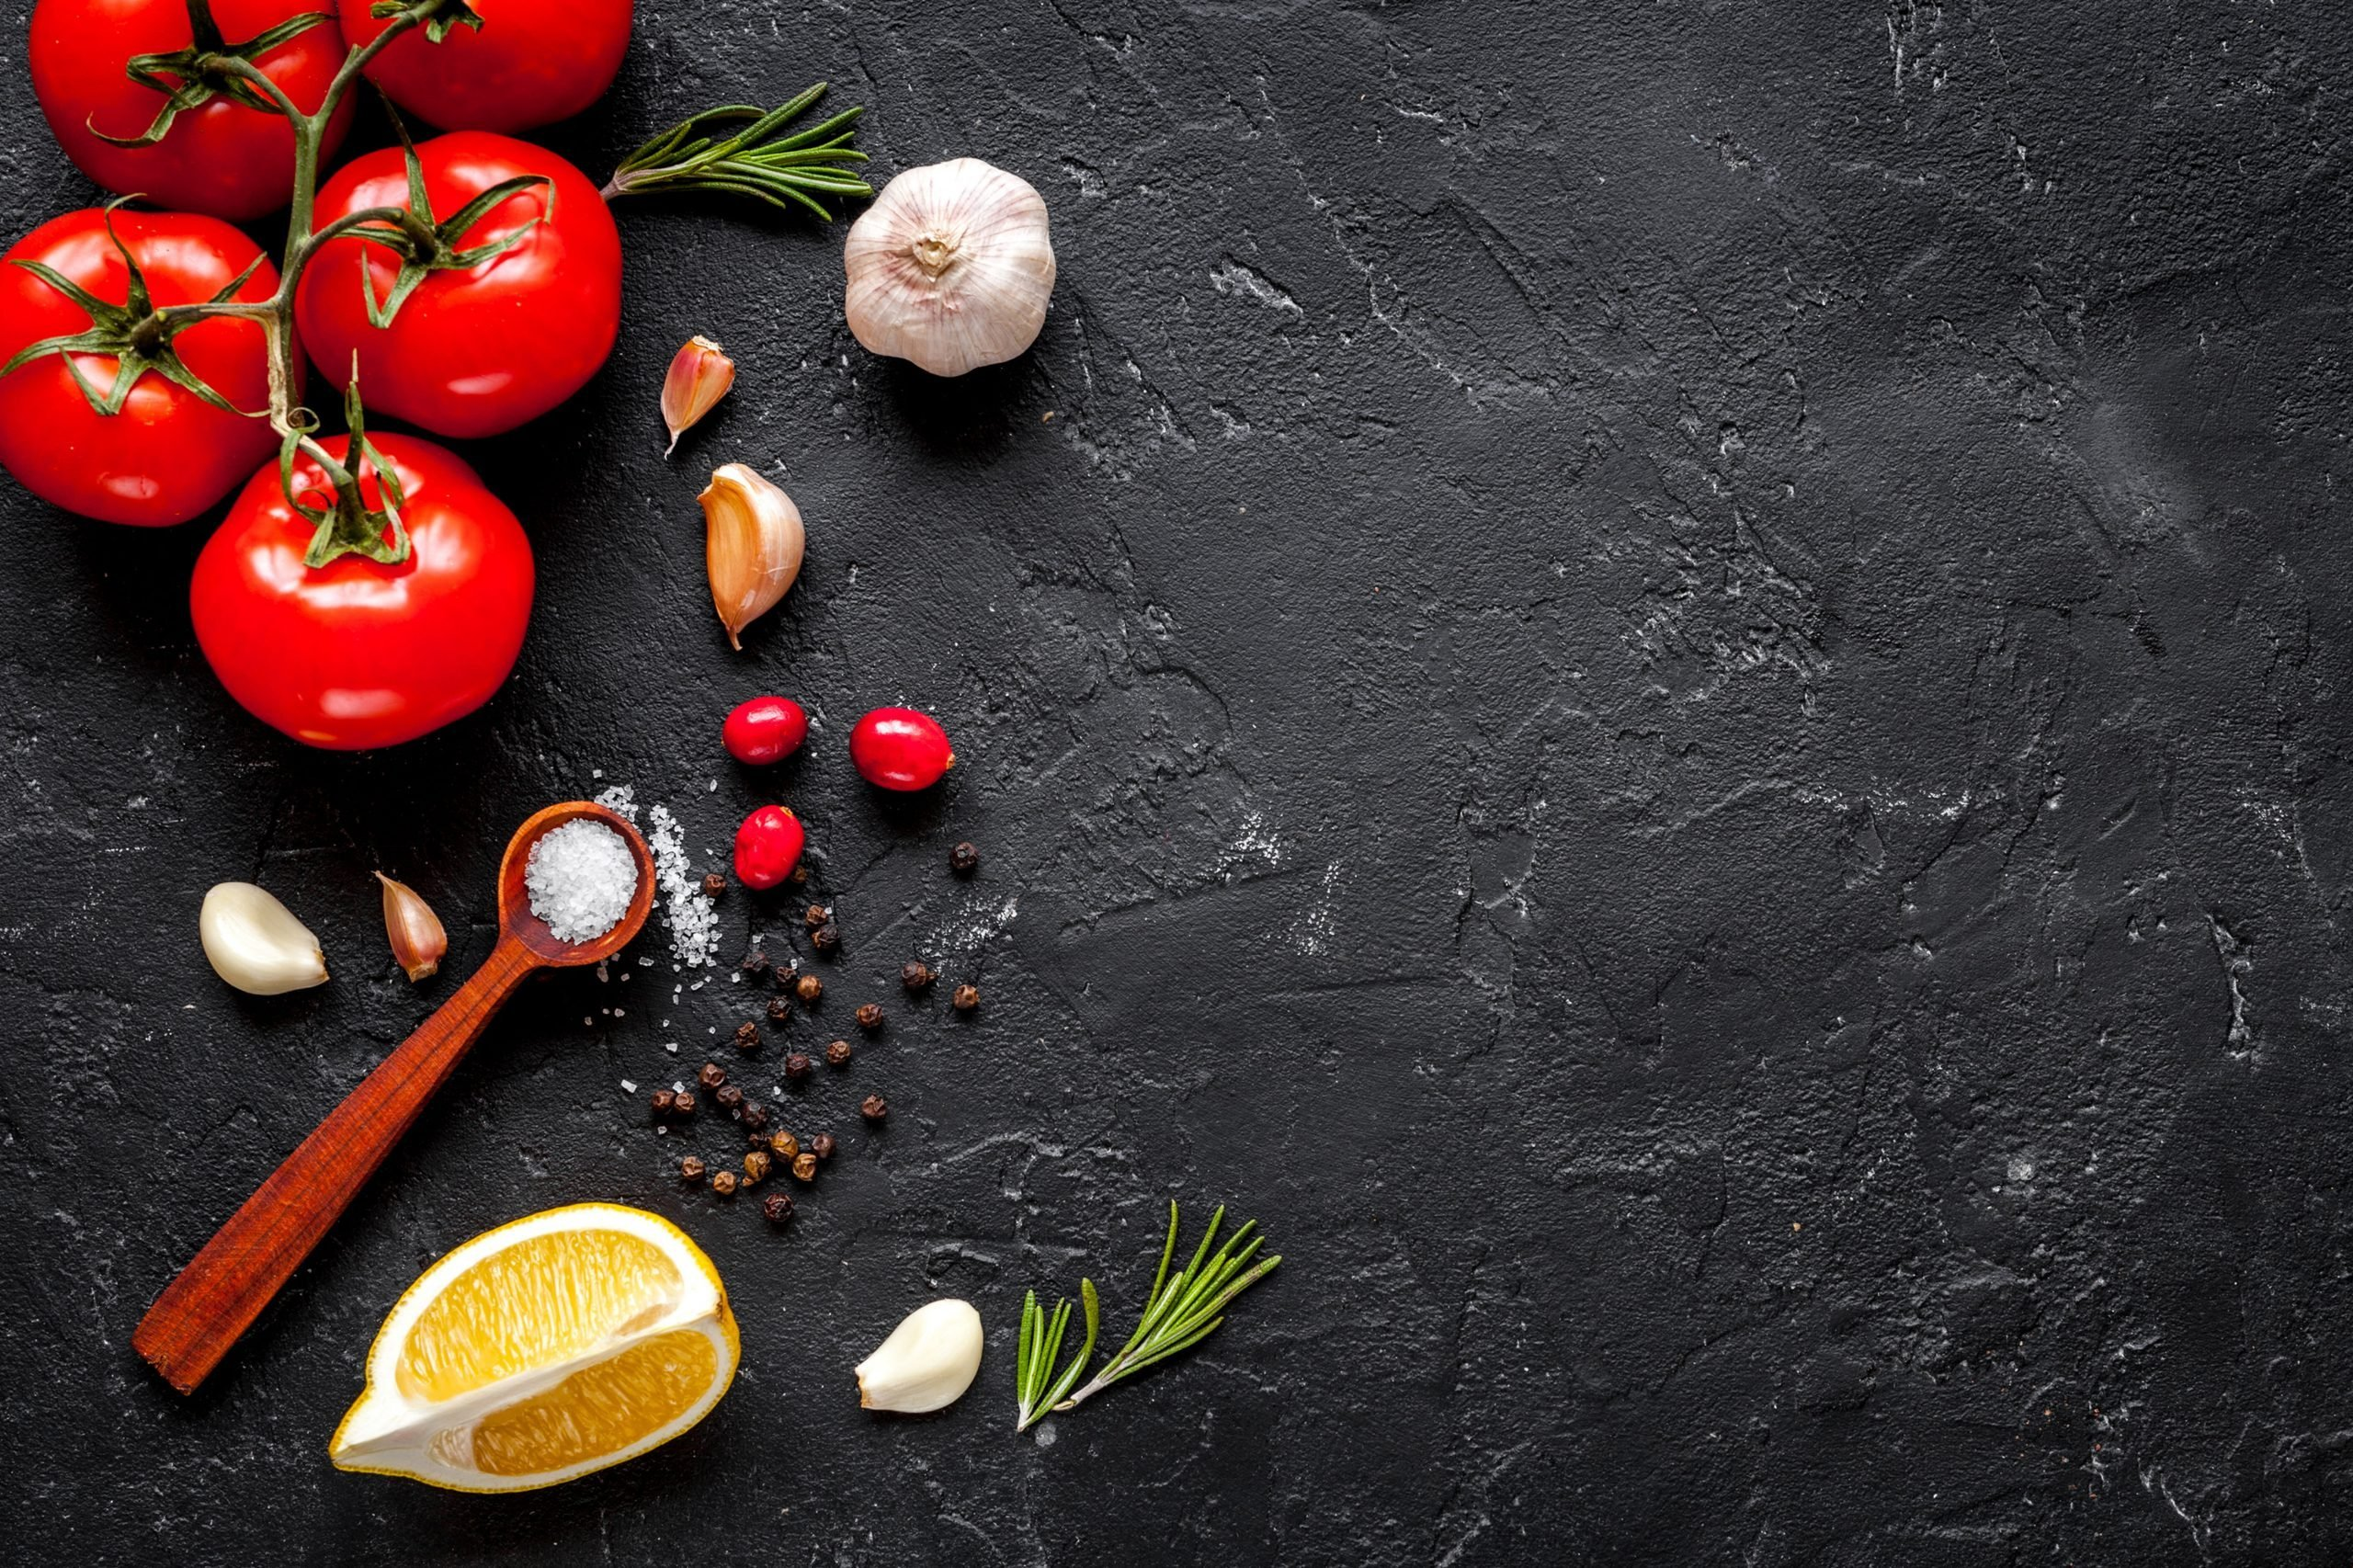 Food Ingredients Product Photography